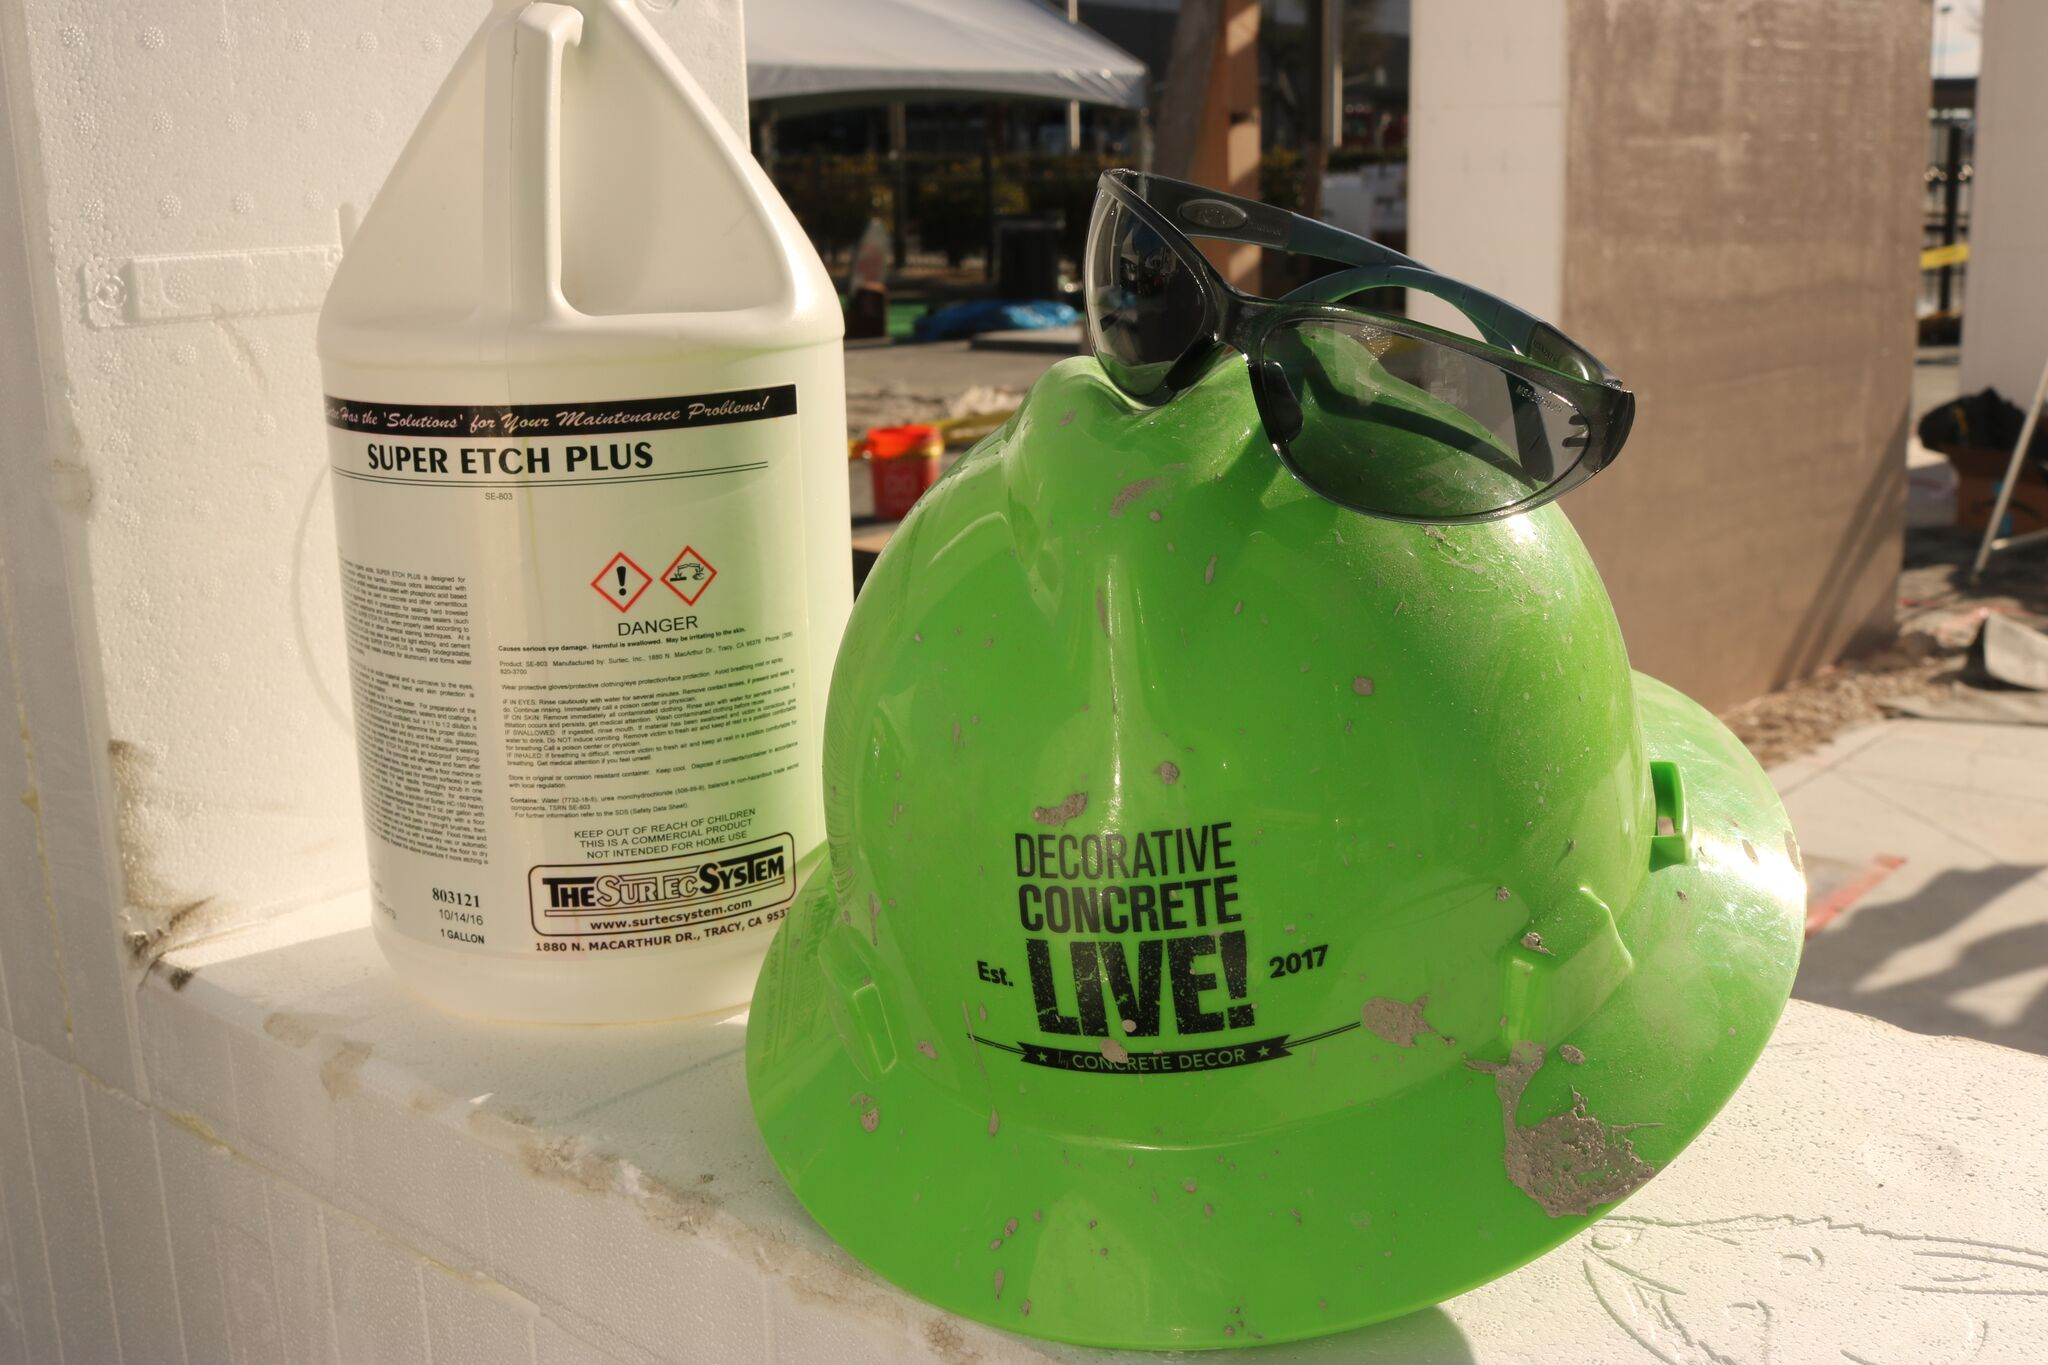 decorative concrete live hats and super etch plus